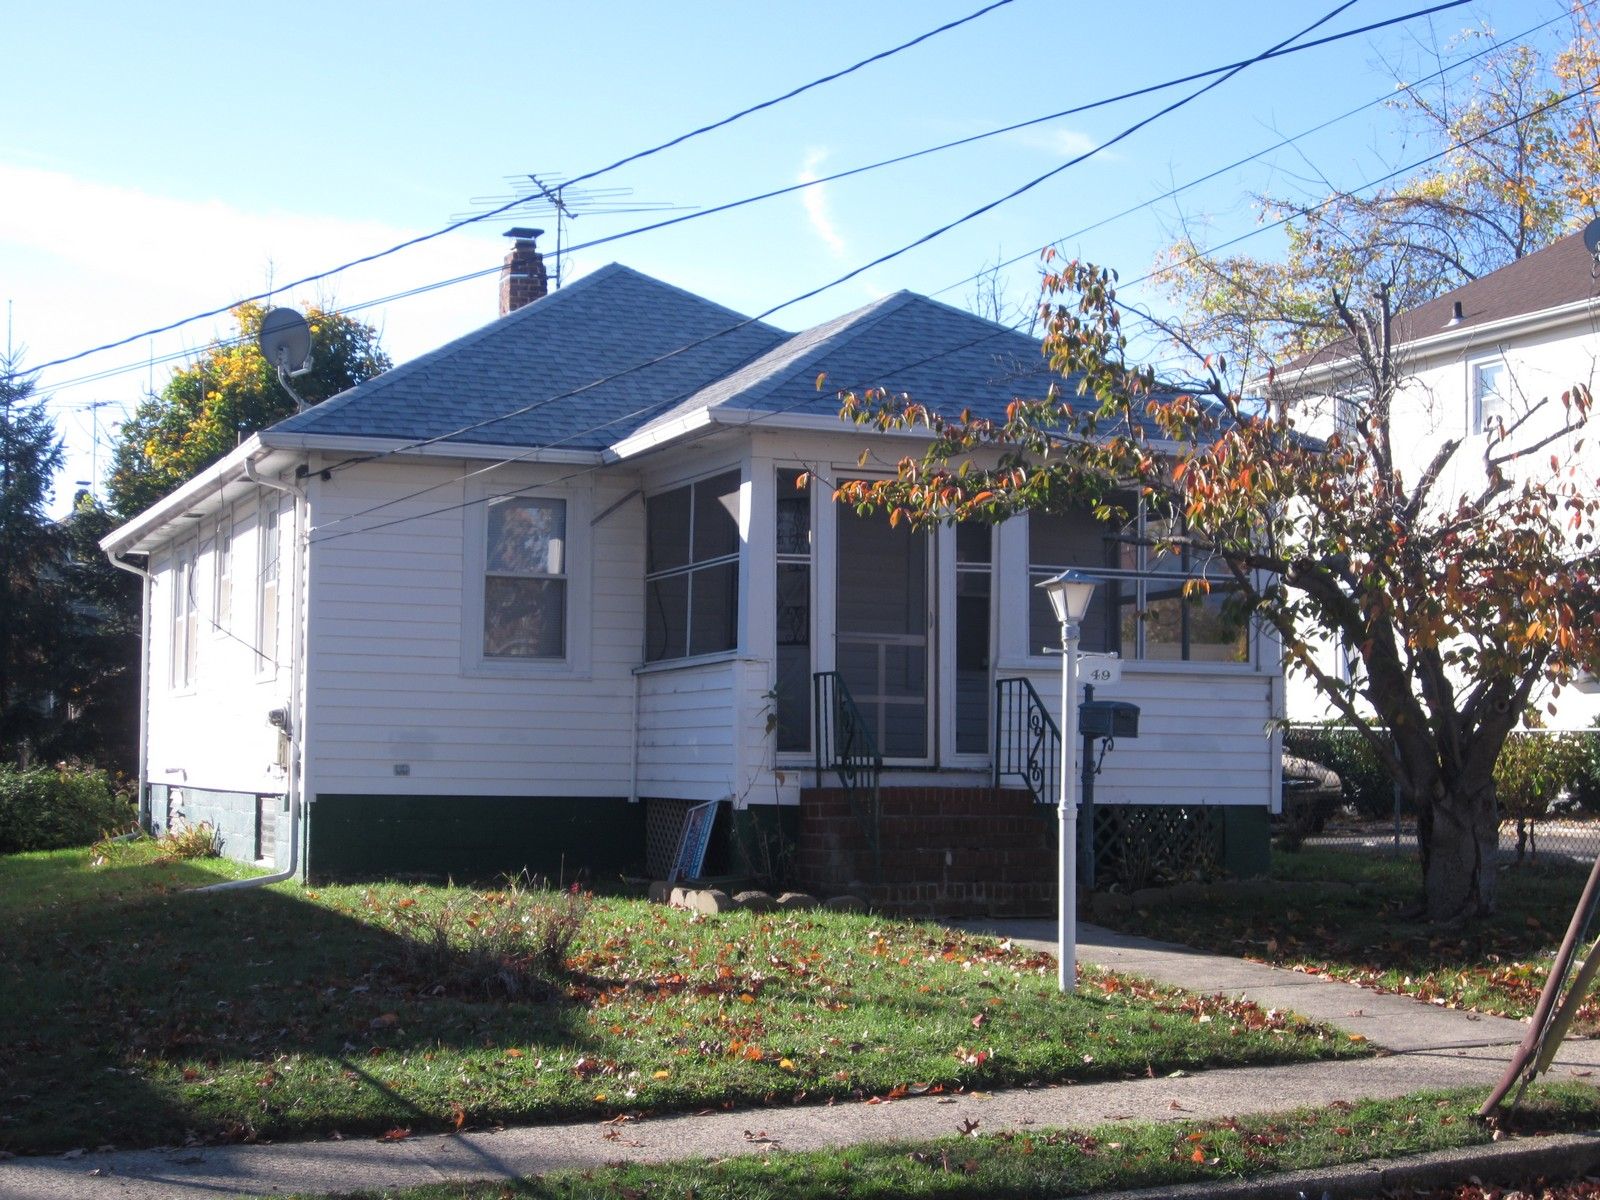 Single Family Home for Sale at Red Bank, NJ 49 E. Westside Ave. Red Bank, New Jersey 07701 United States